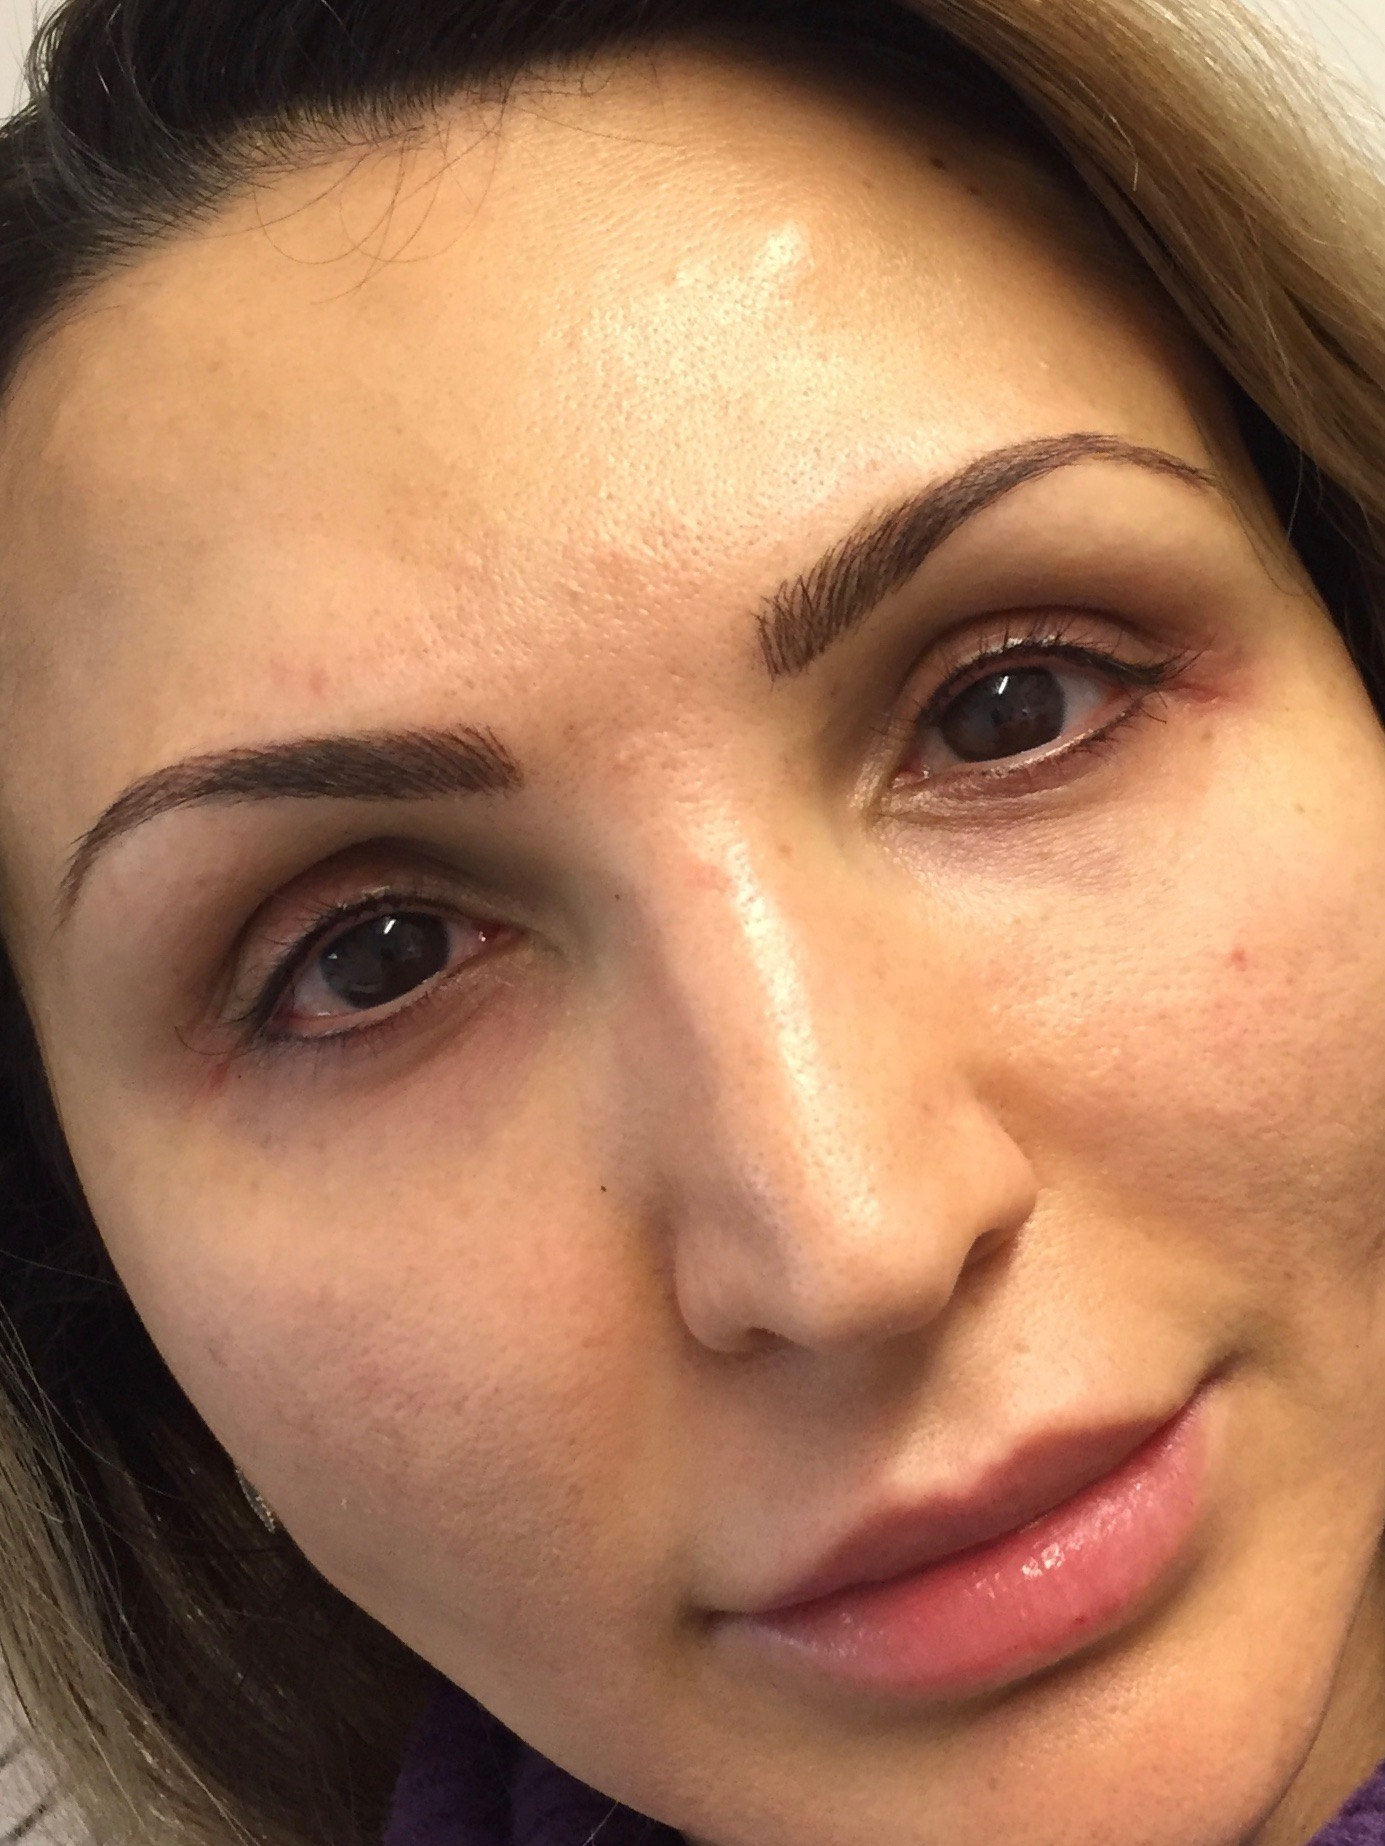 after_brow_andeye_treatment